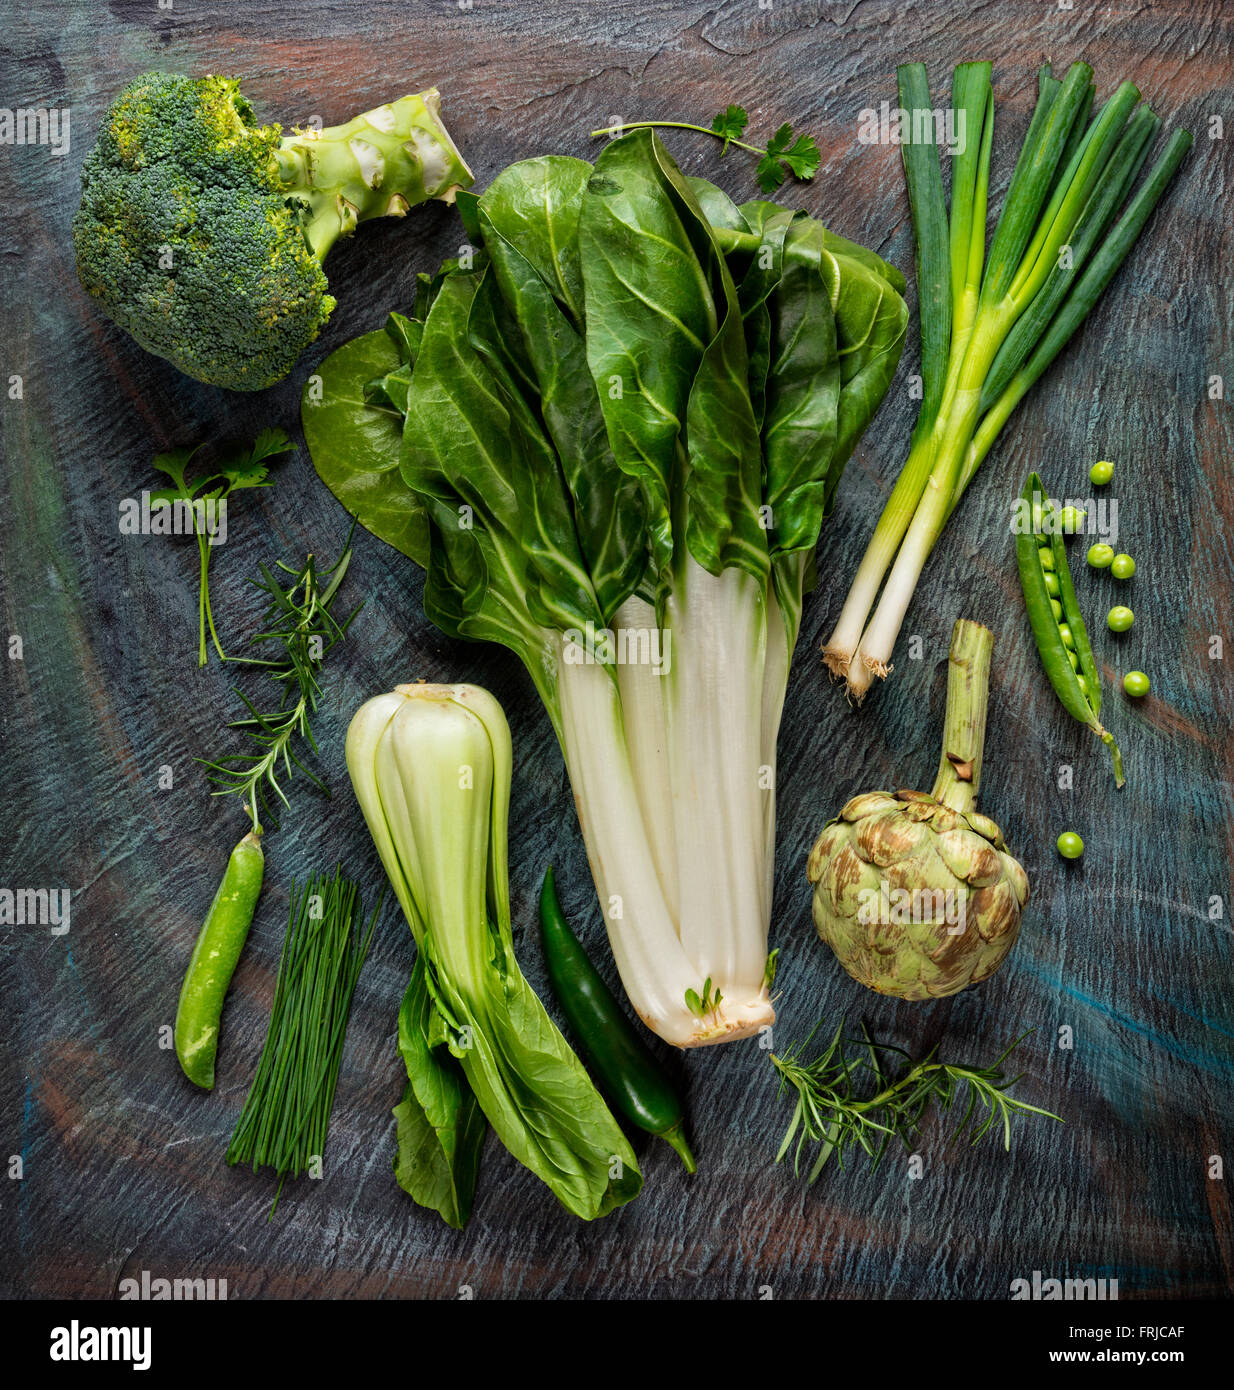 Collection of fresh green vegetables on black stone Stock Photo